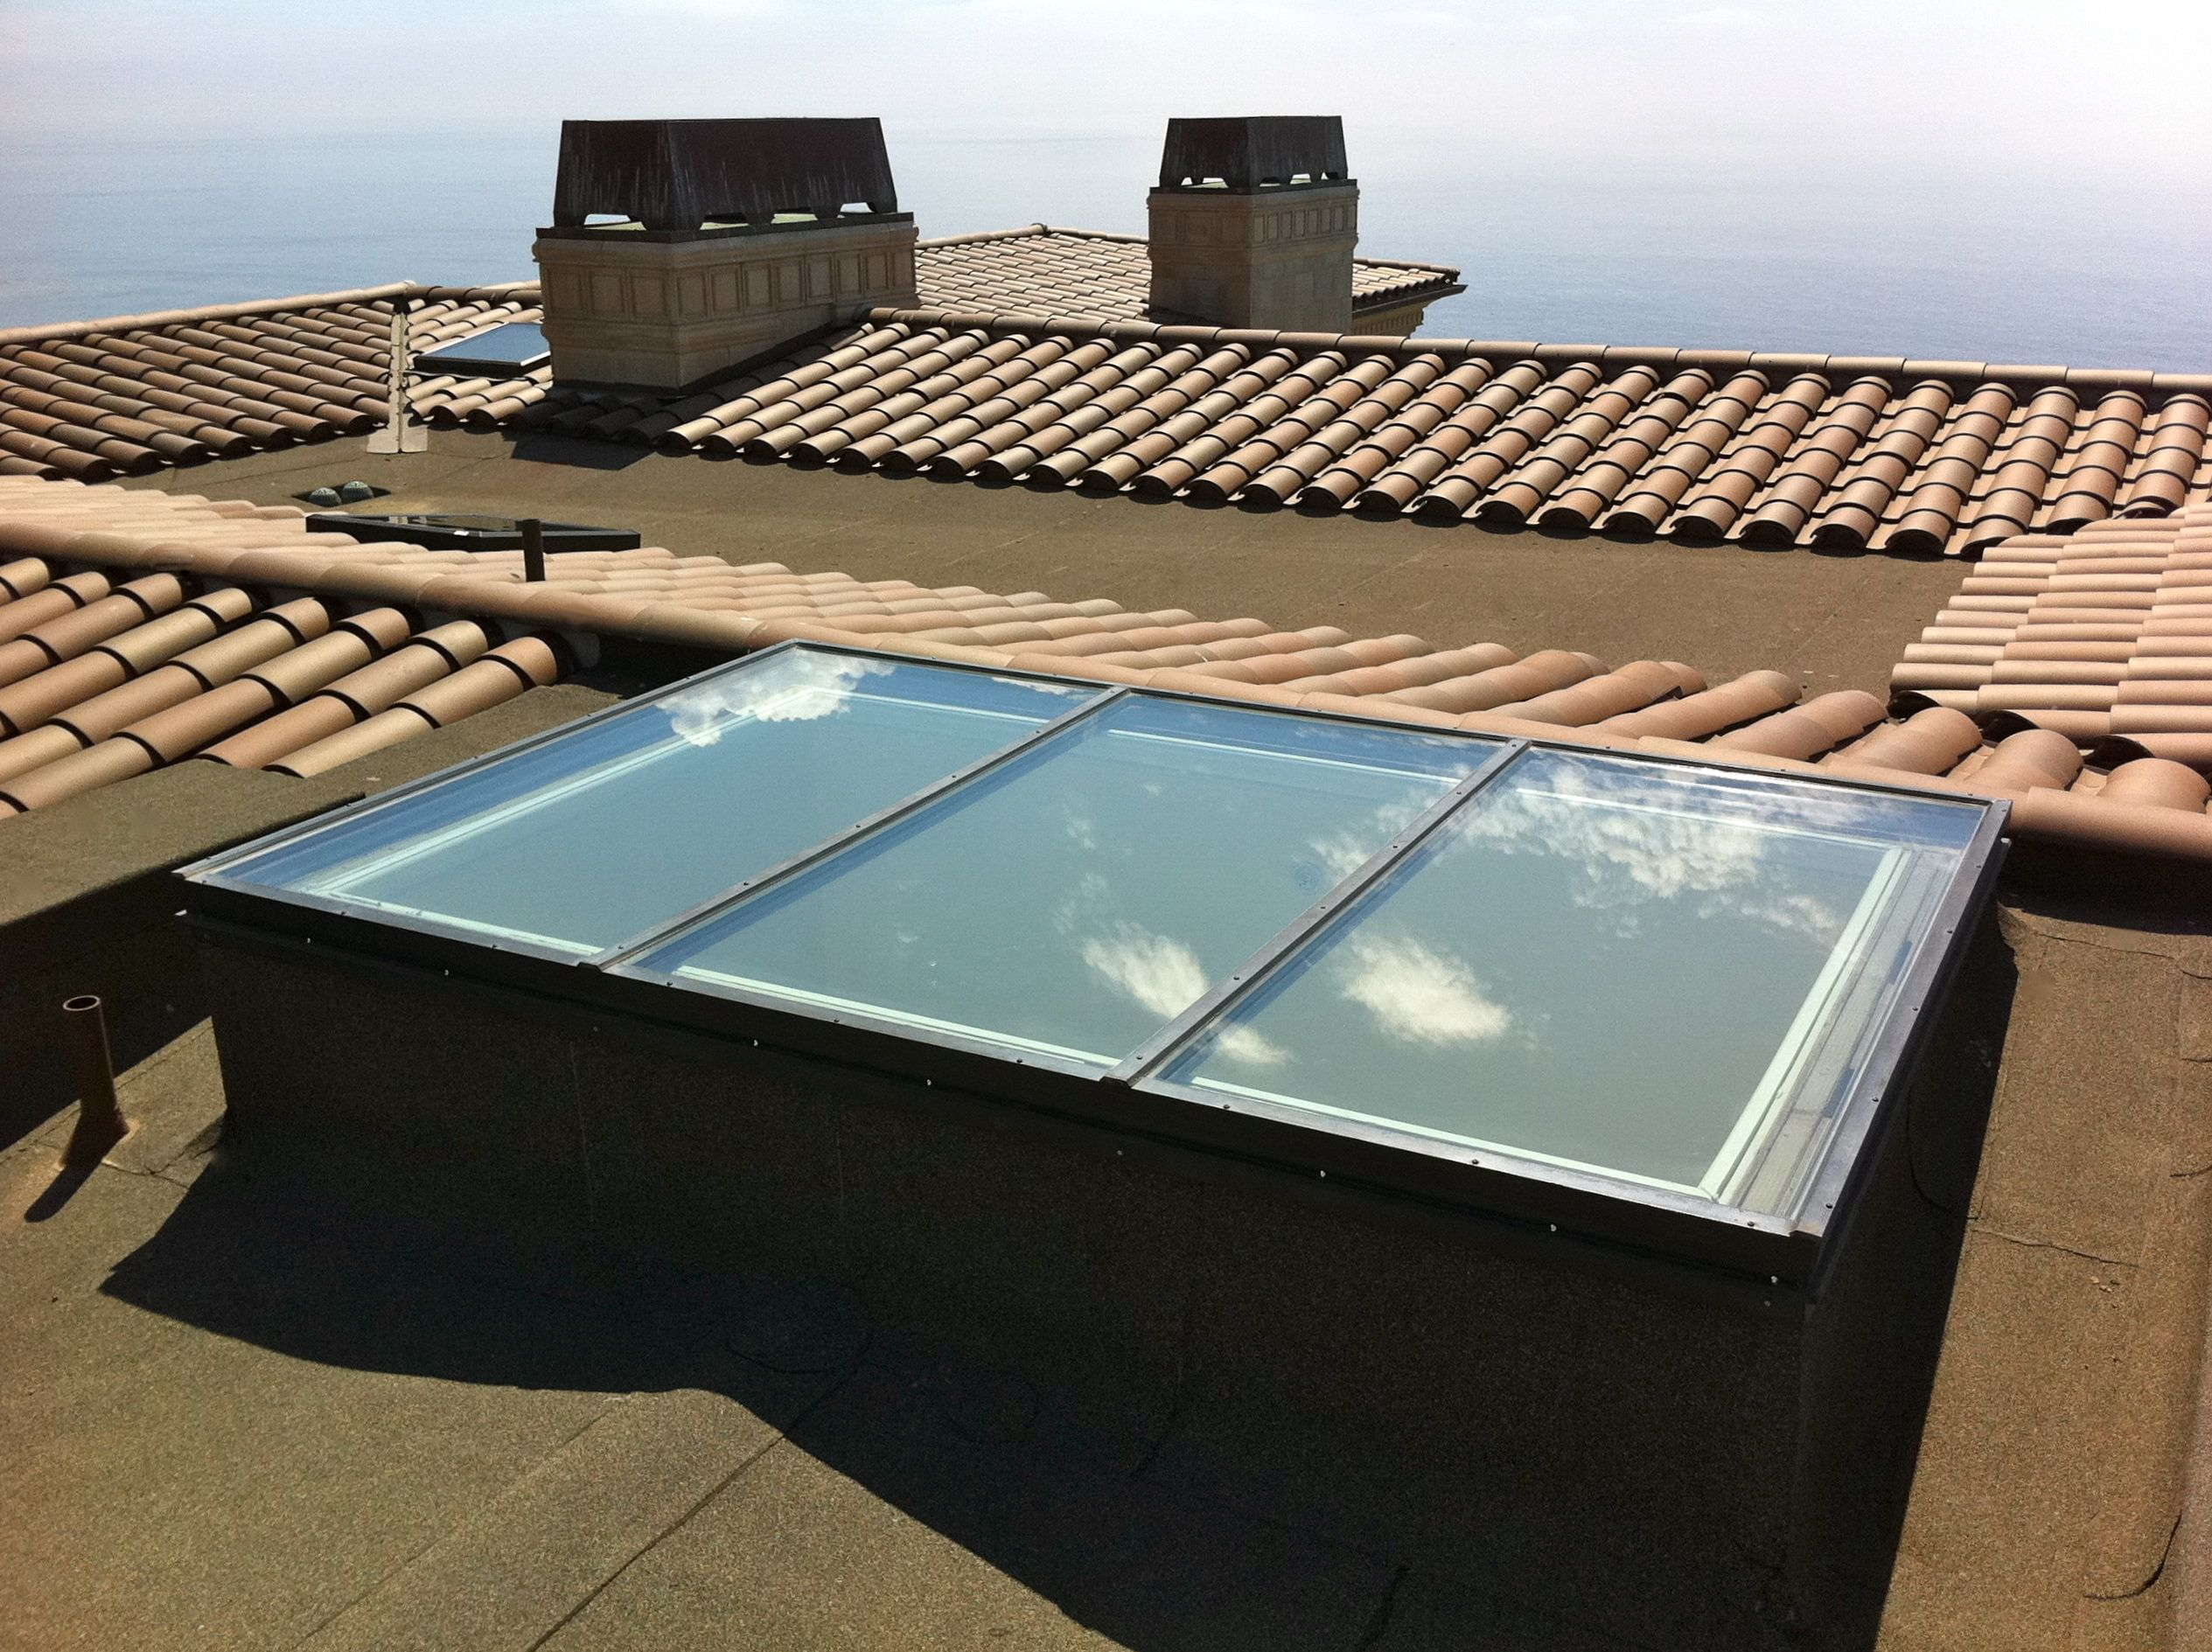 Www Chandlersroofing Com Curb Mounted Flat Low E Glass Skylight Installed With Modified Torch Down Roofing In Rancho Palos Verdes Ca